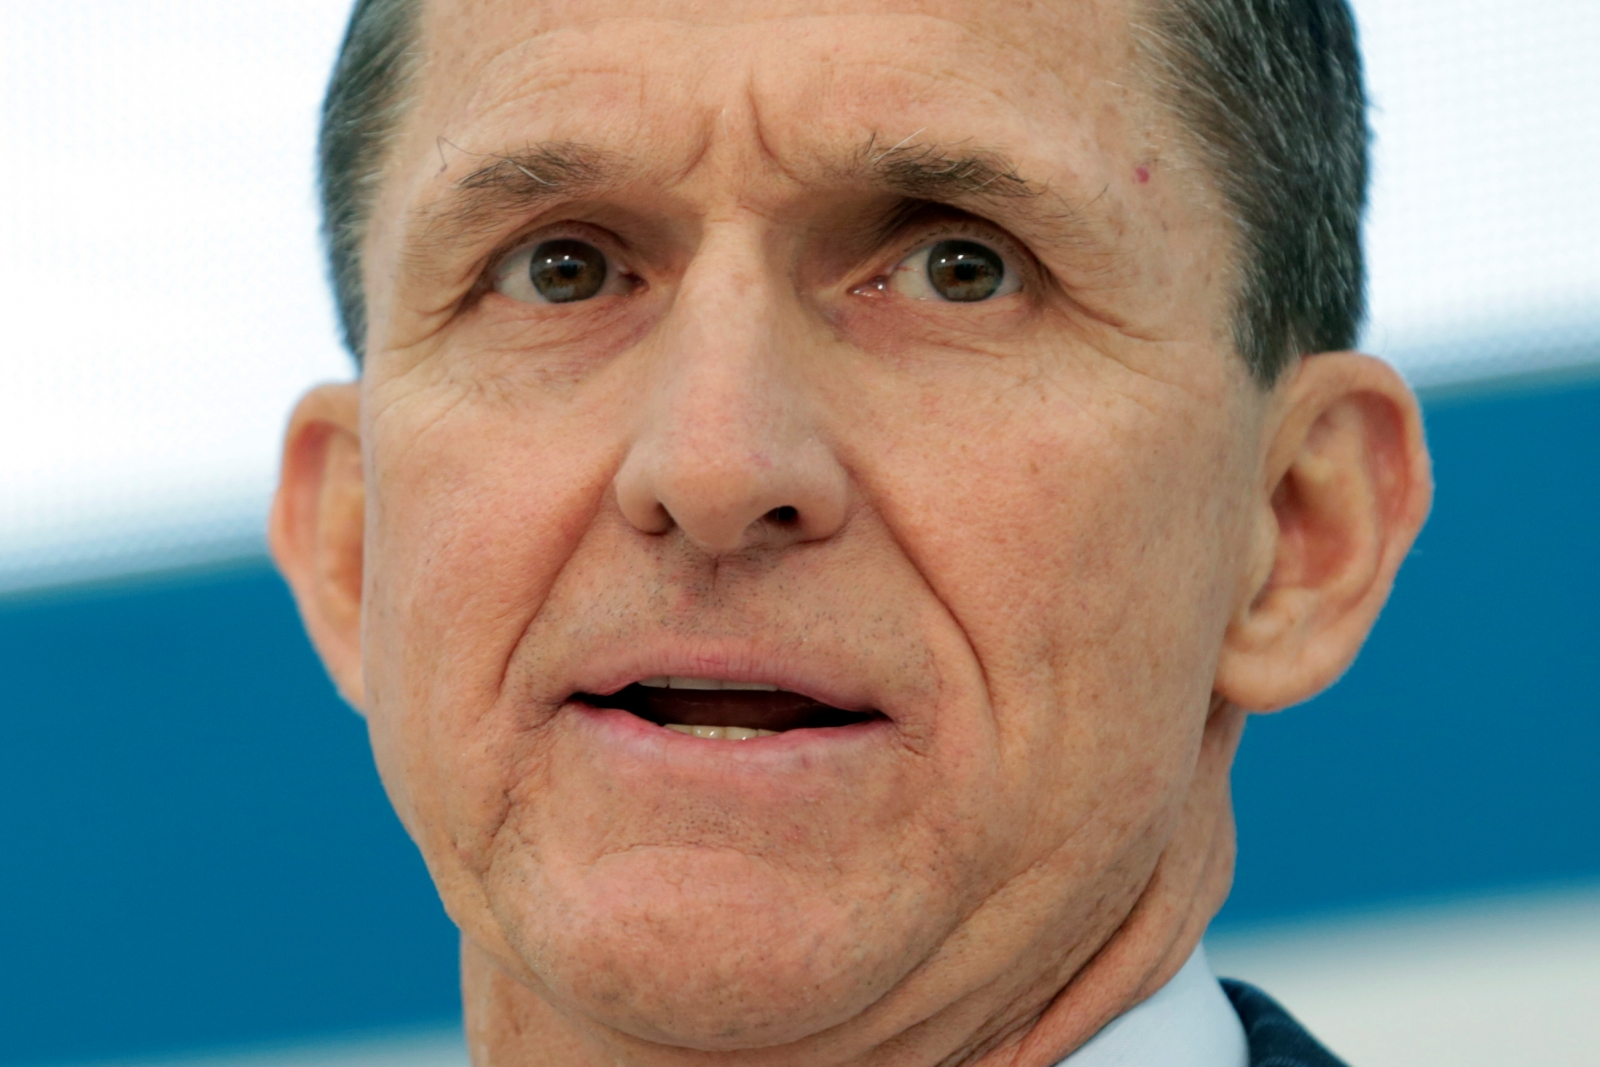 US Intel Investigated Flynn's Communications With Russia